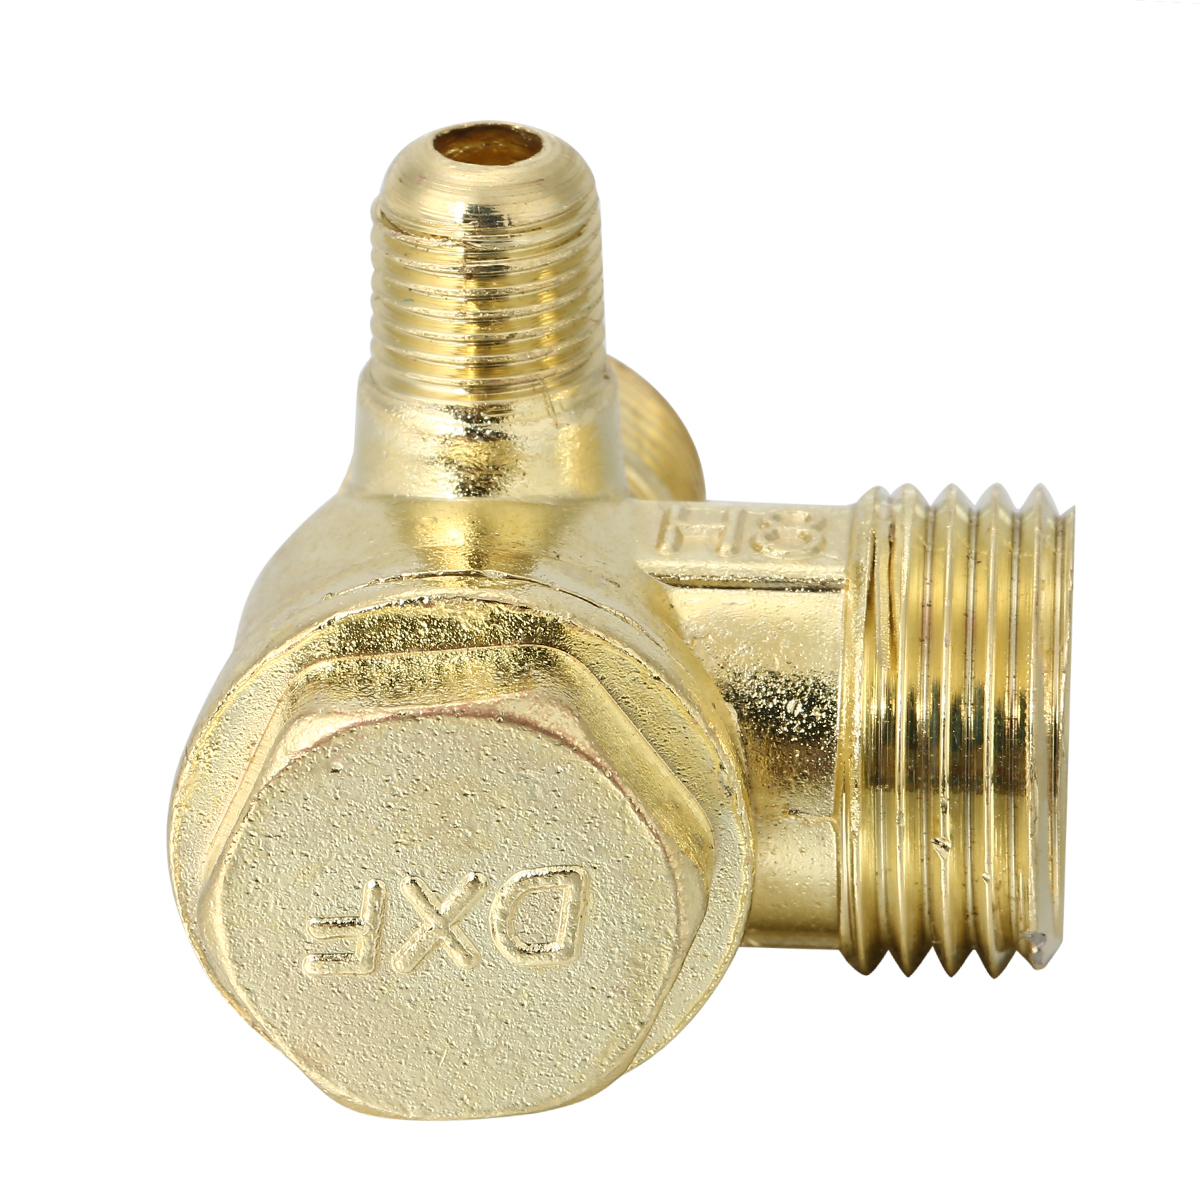 1pc 3 Port Aluminum Alloy Check Valve Male Thread Cast Iron Check Valve Connector Tool For Air Compressor